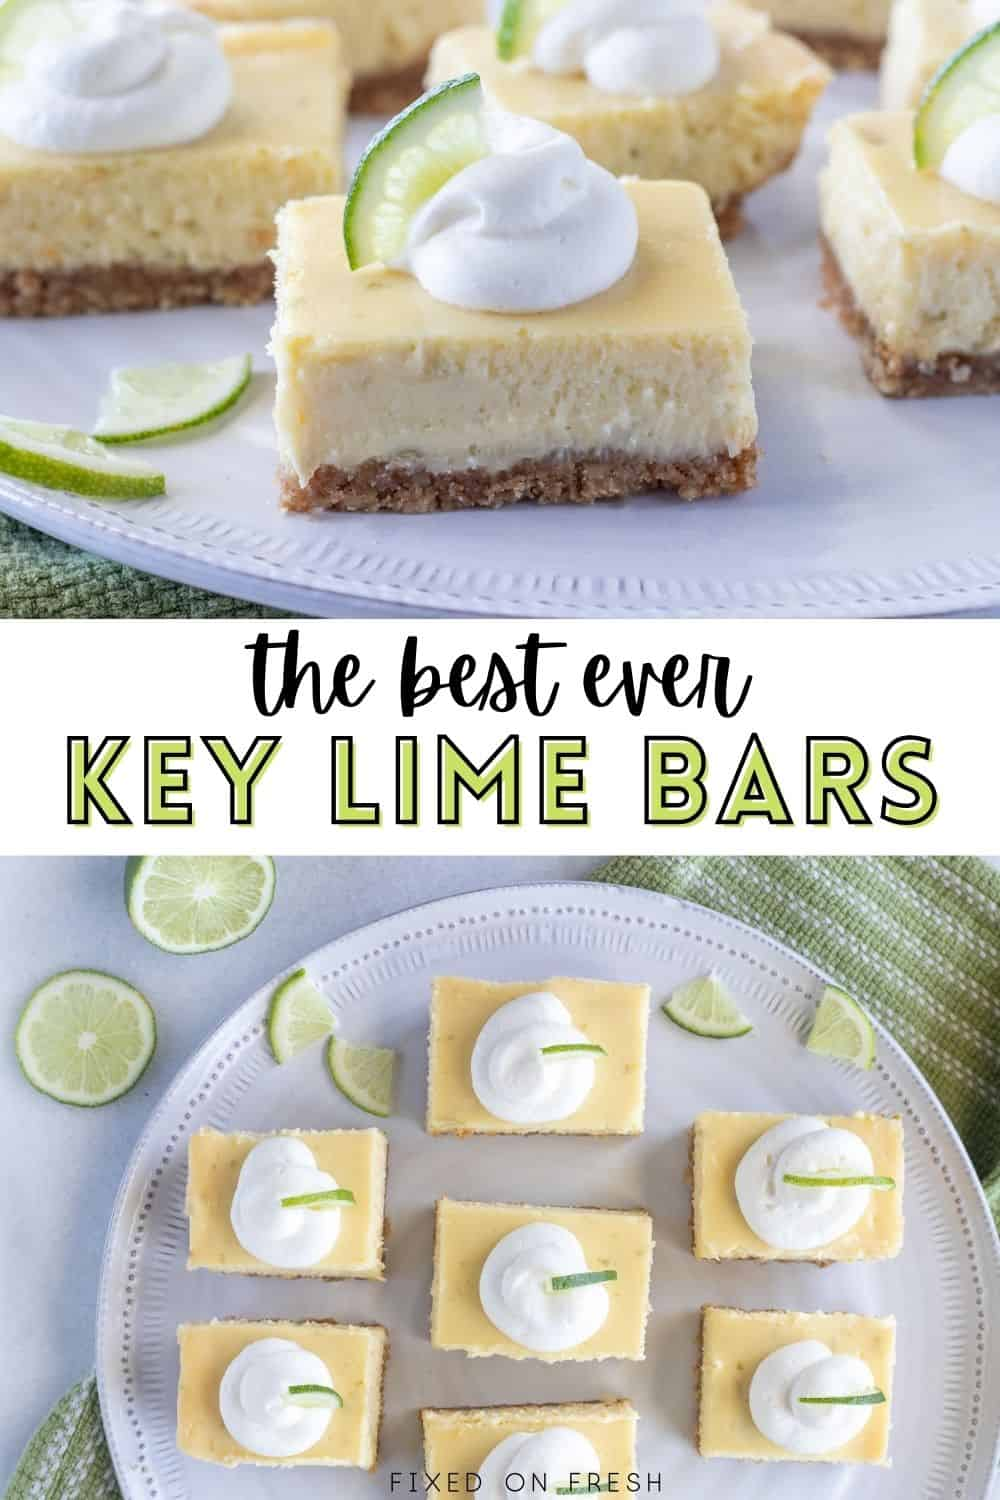 Key lime bars have creamy and tart key lime filling over a pecan graham cracker crust. This is the perfect mini dessert for all your spring and summer gatherings!